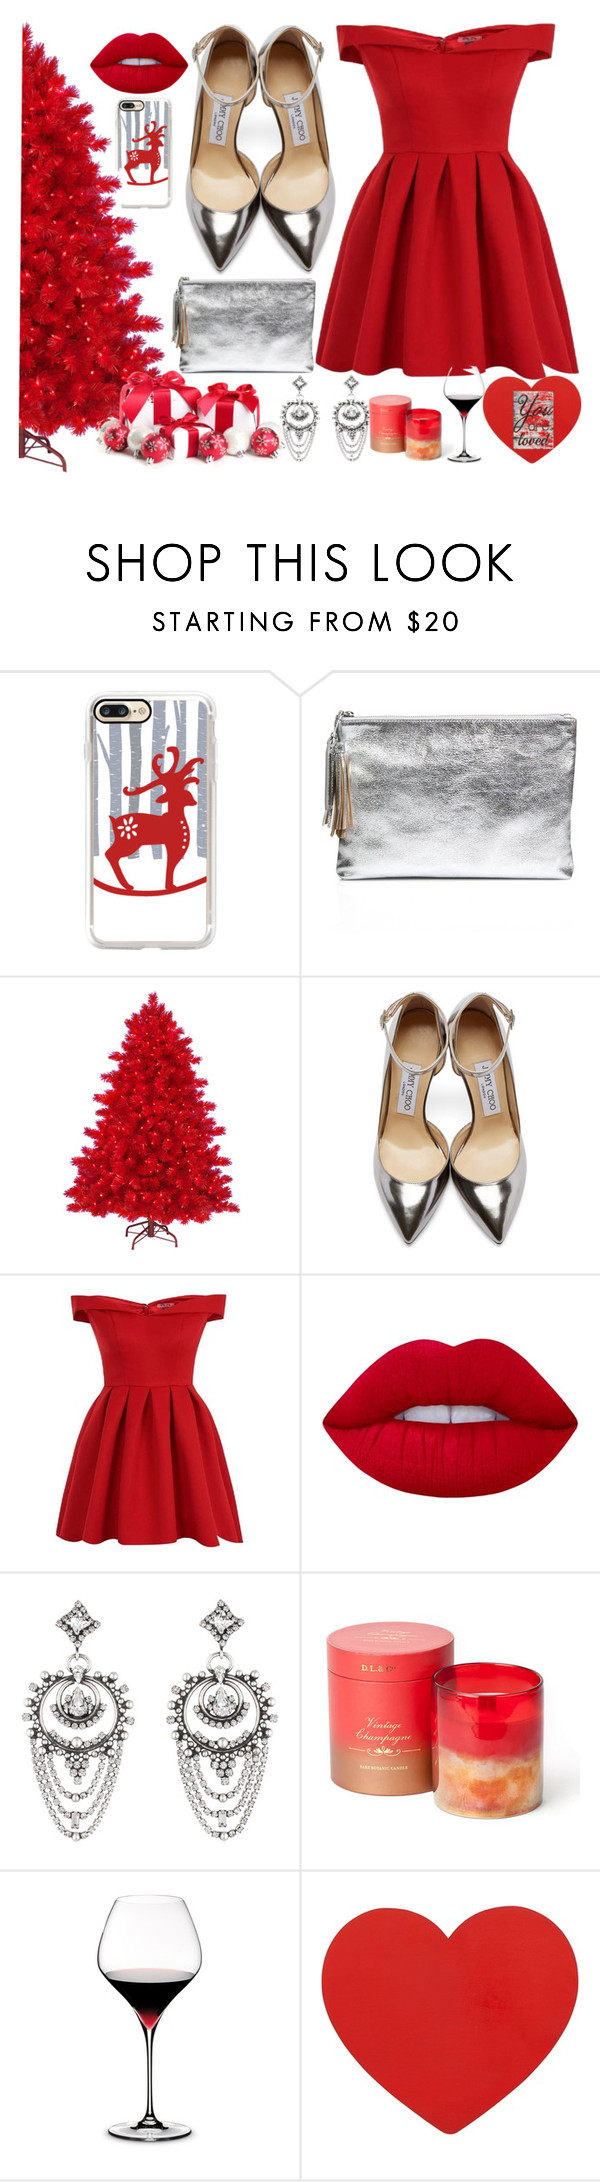 """Red in December"" by kat-van-d ❤ liked on Polyvore featuring Casetify, Loeffler Randall, Jimmy Choo, Chi Chi, Lime Crime, DANNIJO, D.L. & Co., Riedel, Pier 1 Imports and contest"